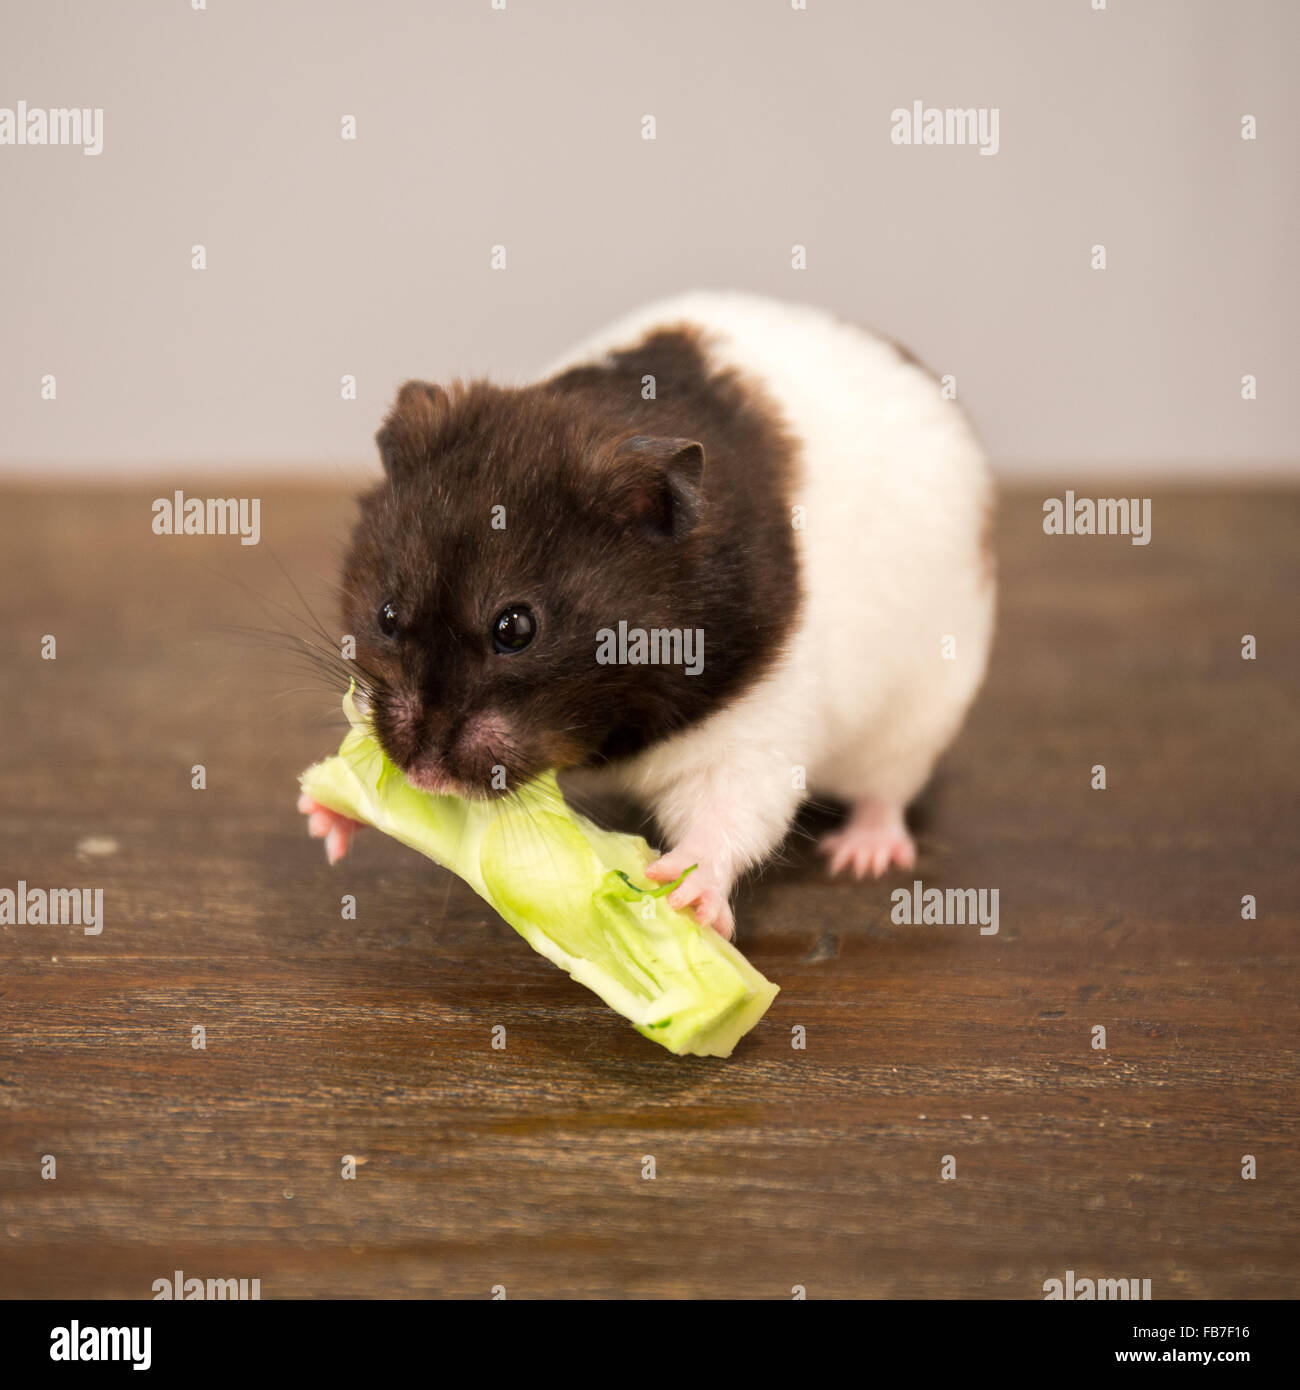 black and white syrian hamster eating a broccoli stem ...